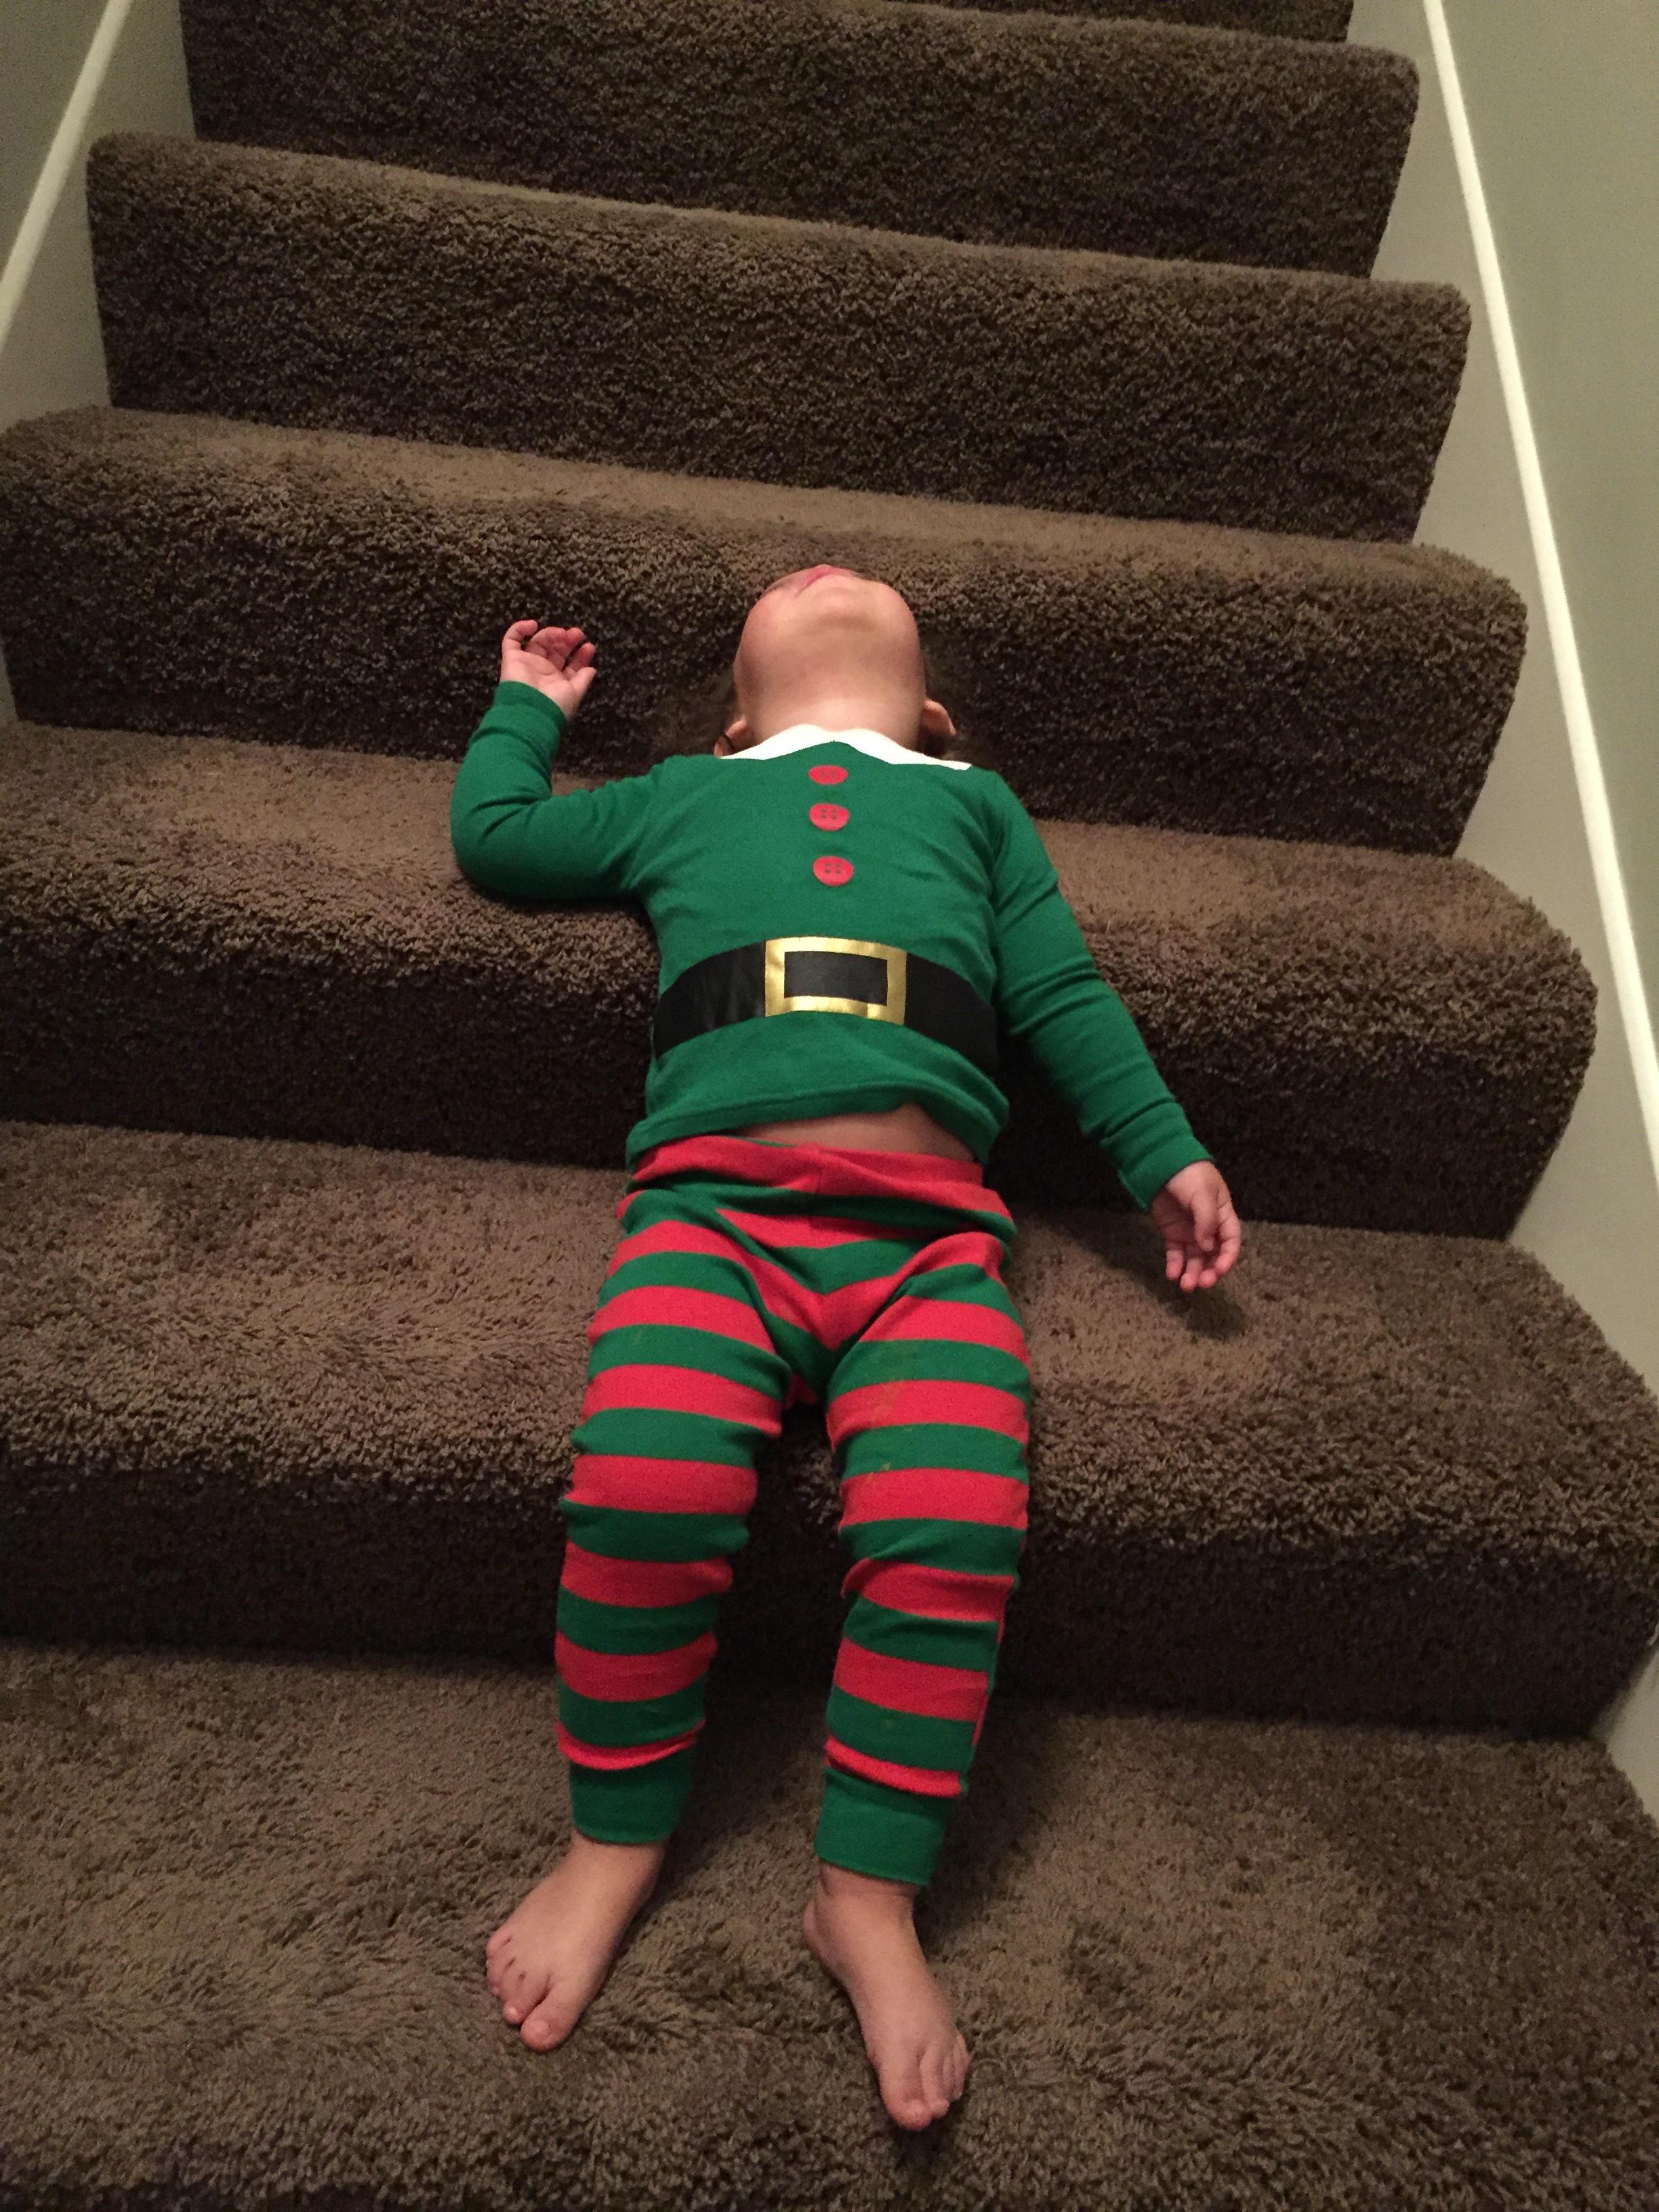 Oh the drama of waiting on the stairs to see what Santa brought!